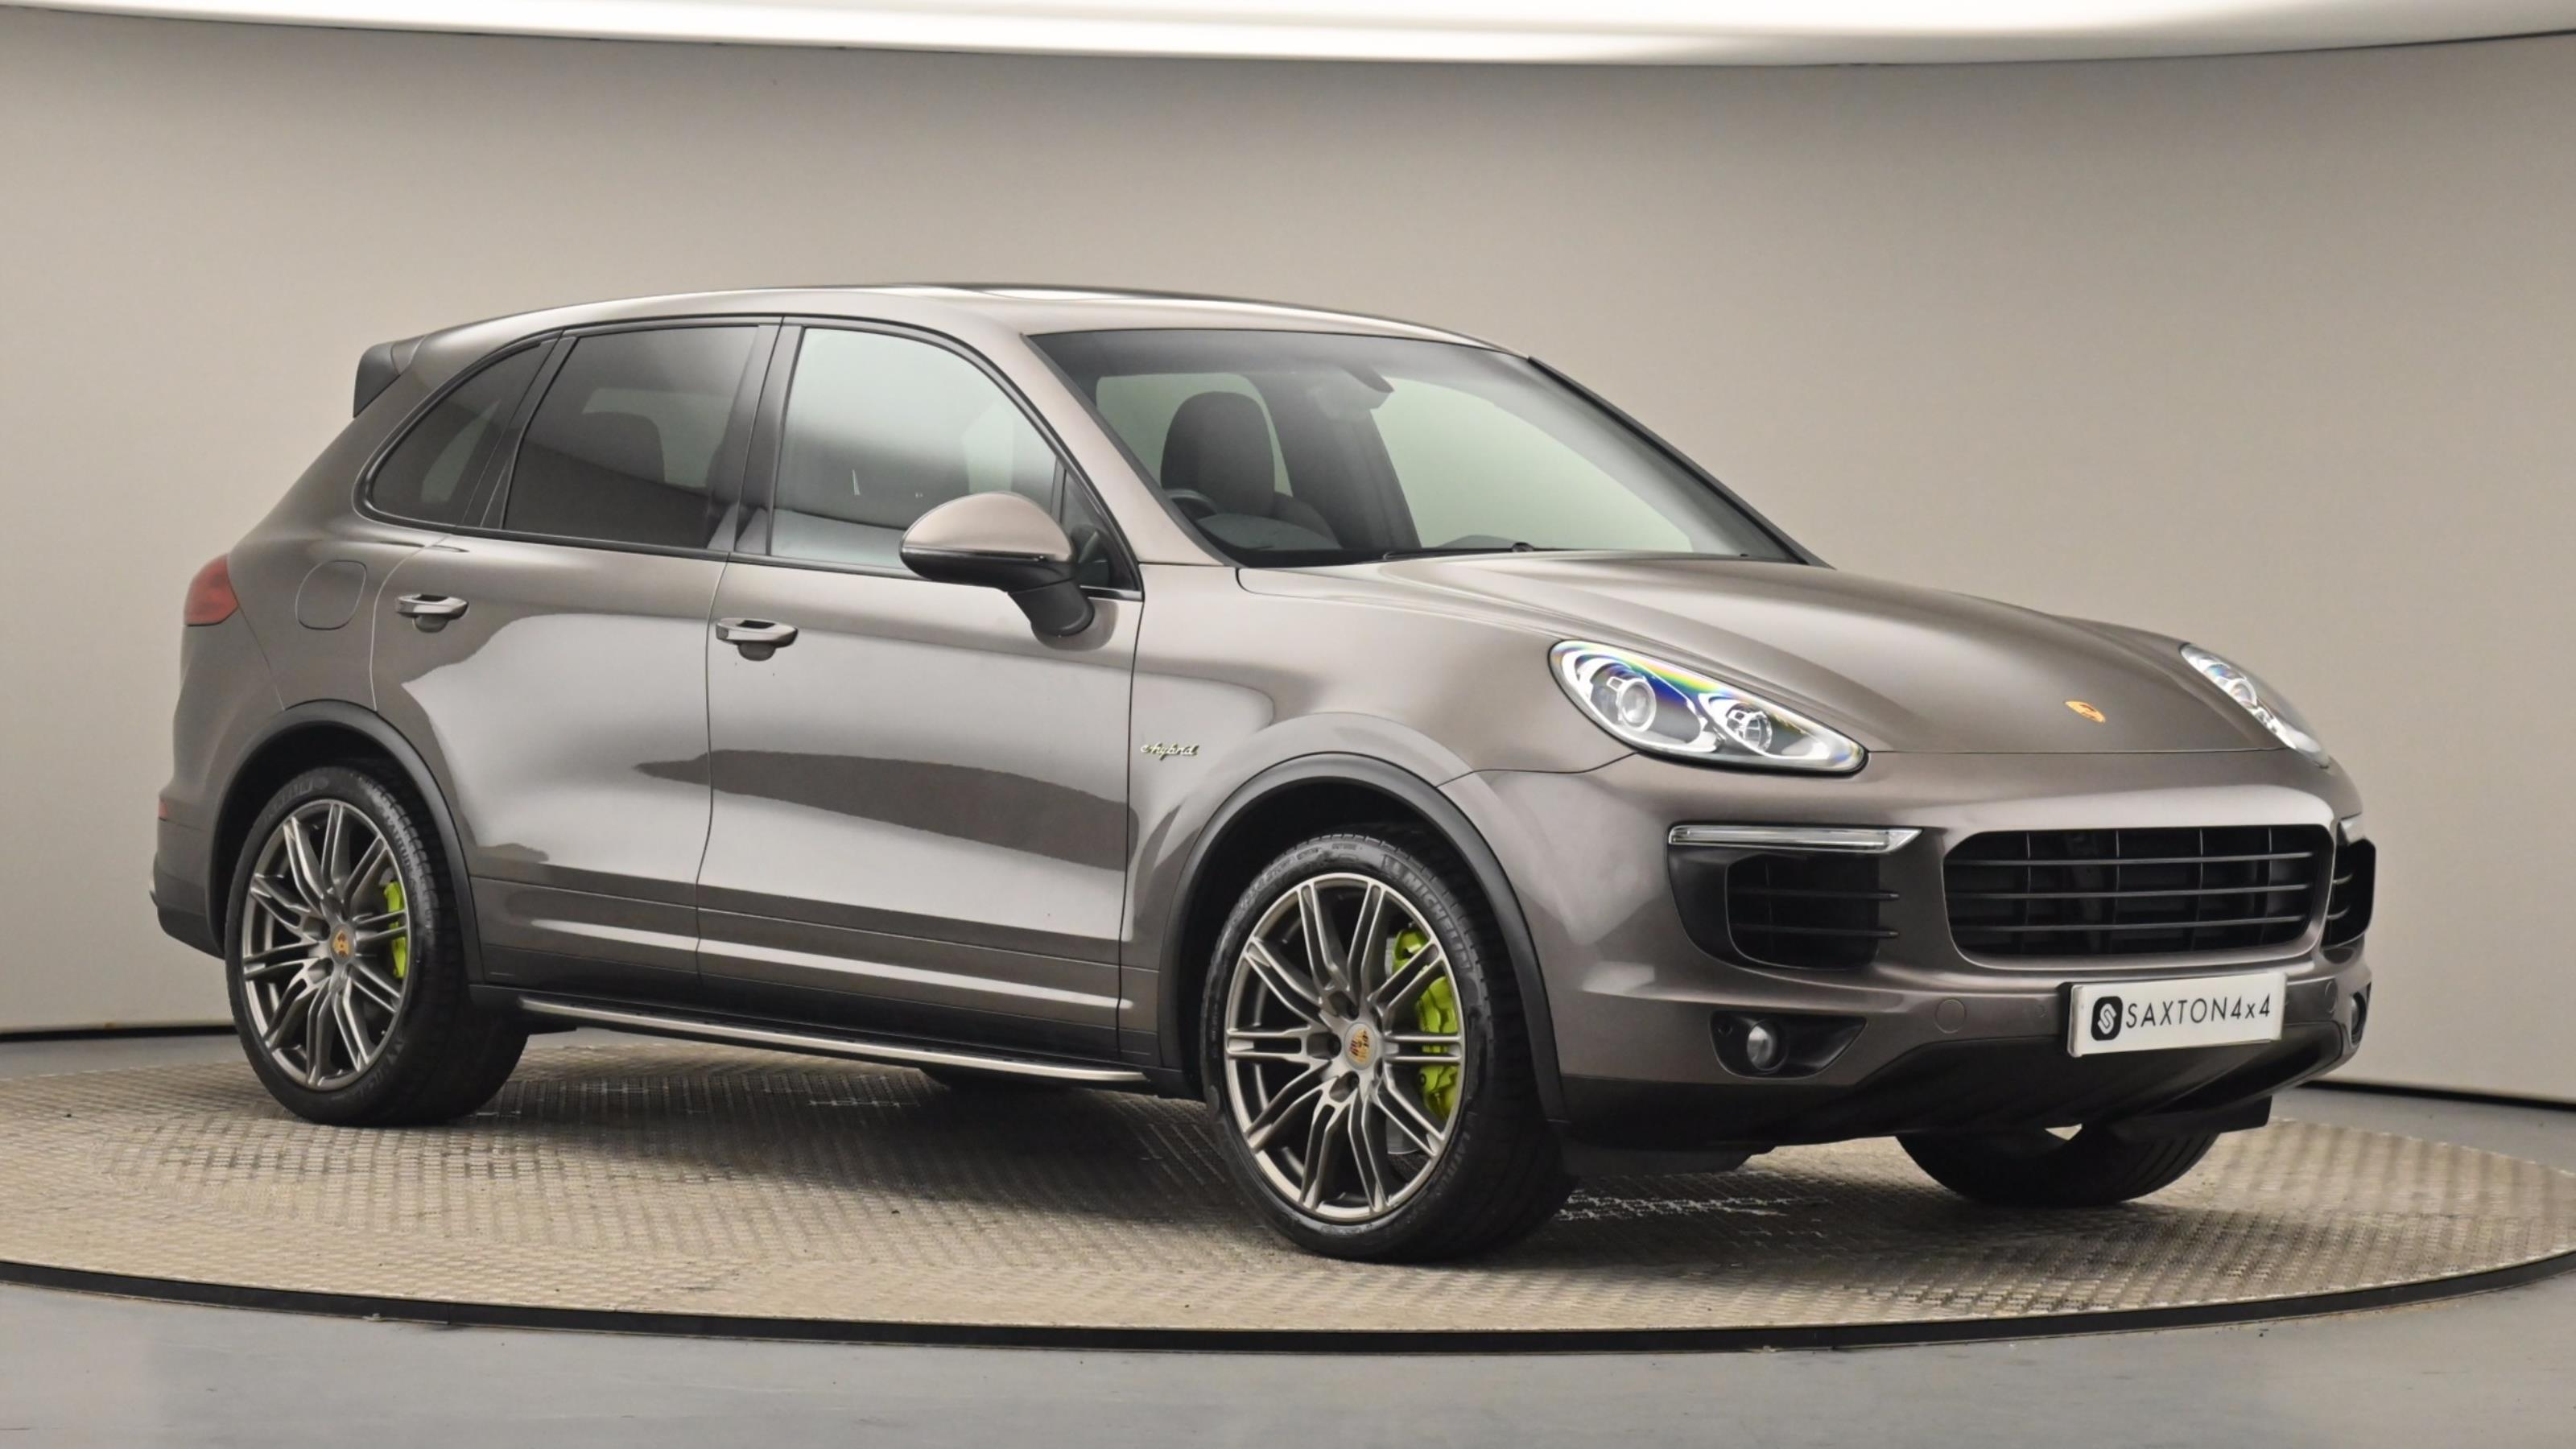 Used 2015 Porsche CAYENNE S E-Hybrid 5dr Tiptronic S BROWN at Saxton4x4